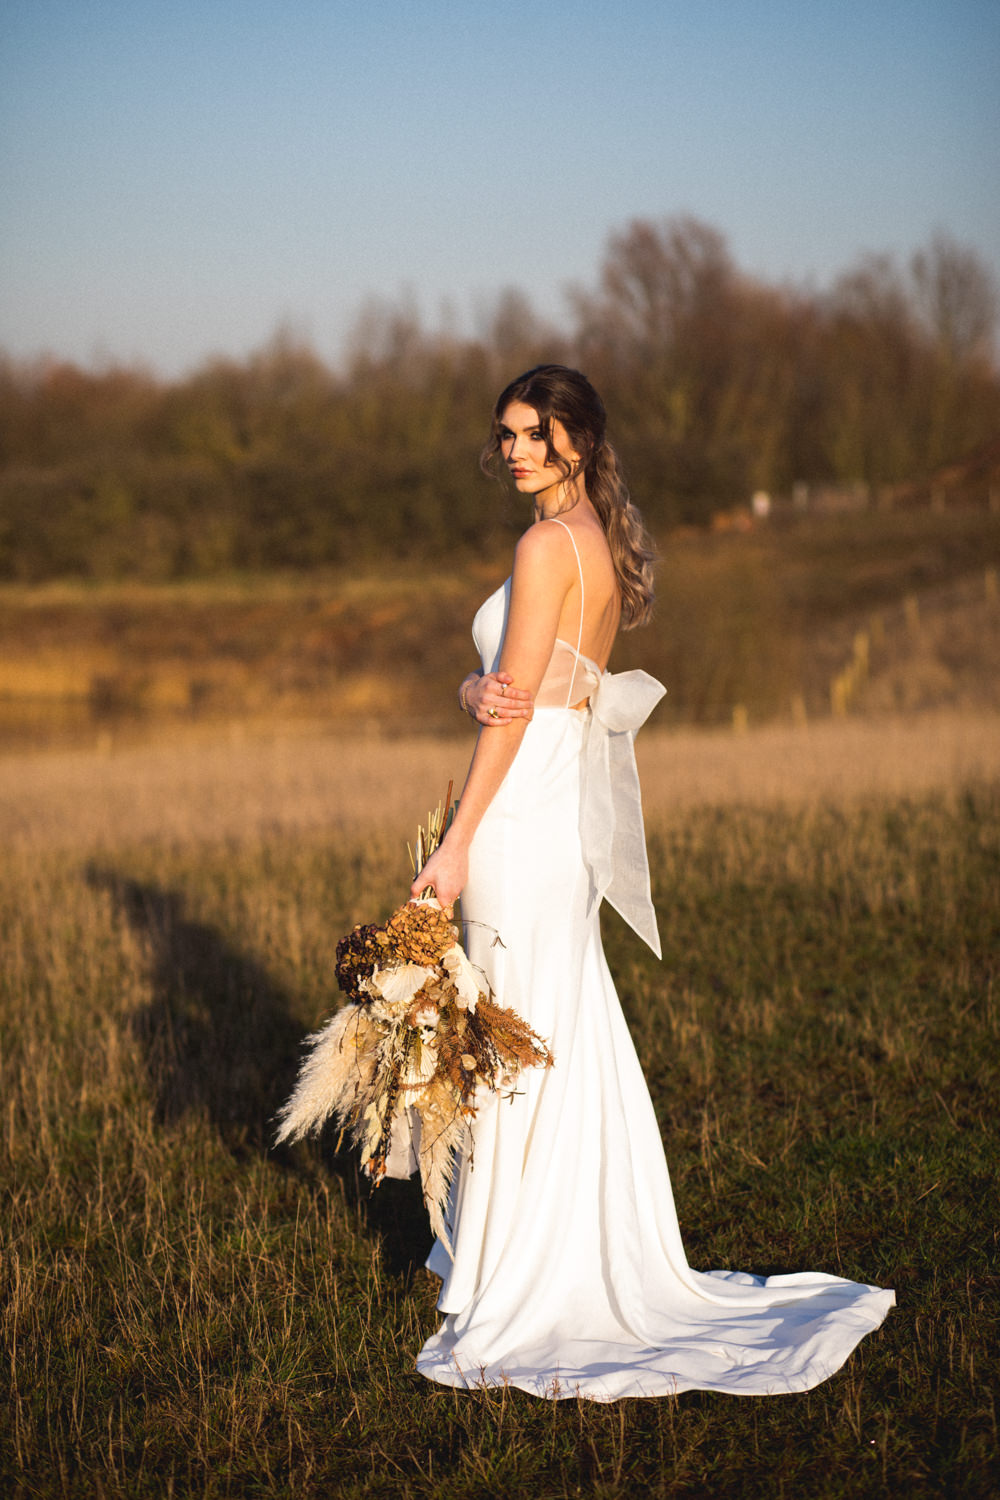 Dress Gown Bride Brdal Oui The Label Bow Back Straps Dried Flower Wedding Ideas Dan Lambourne Photography